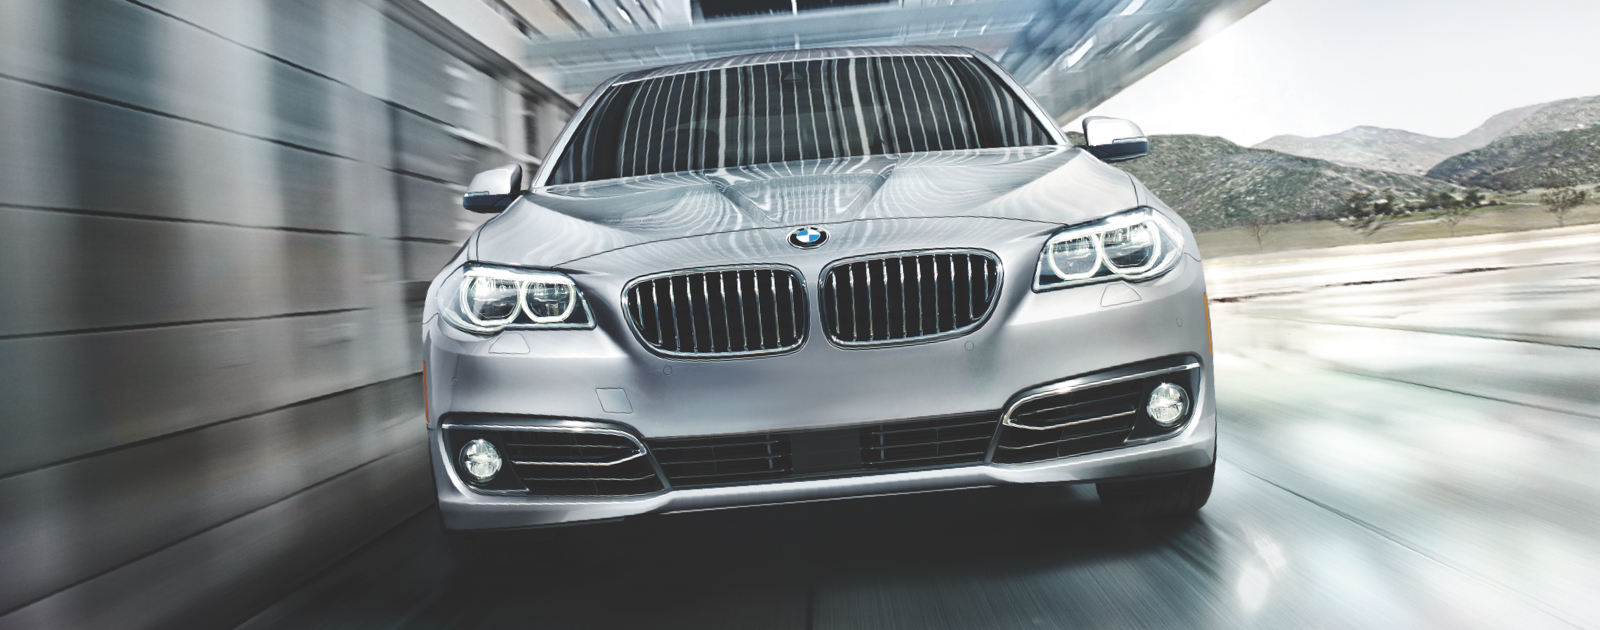 New BMW 5 Series Lease Offers  Prices  Calbasas CA